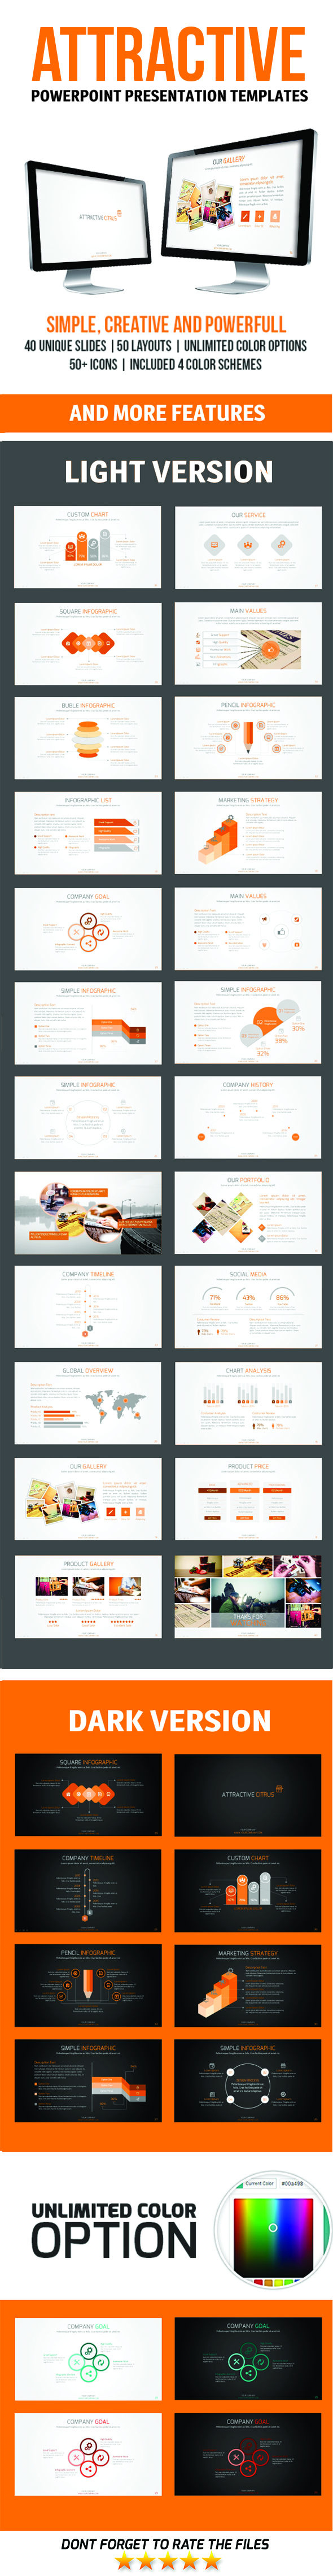 attractive powerpoint presentation template download http